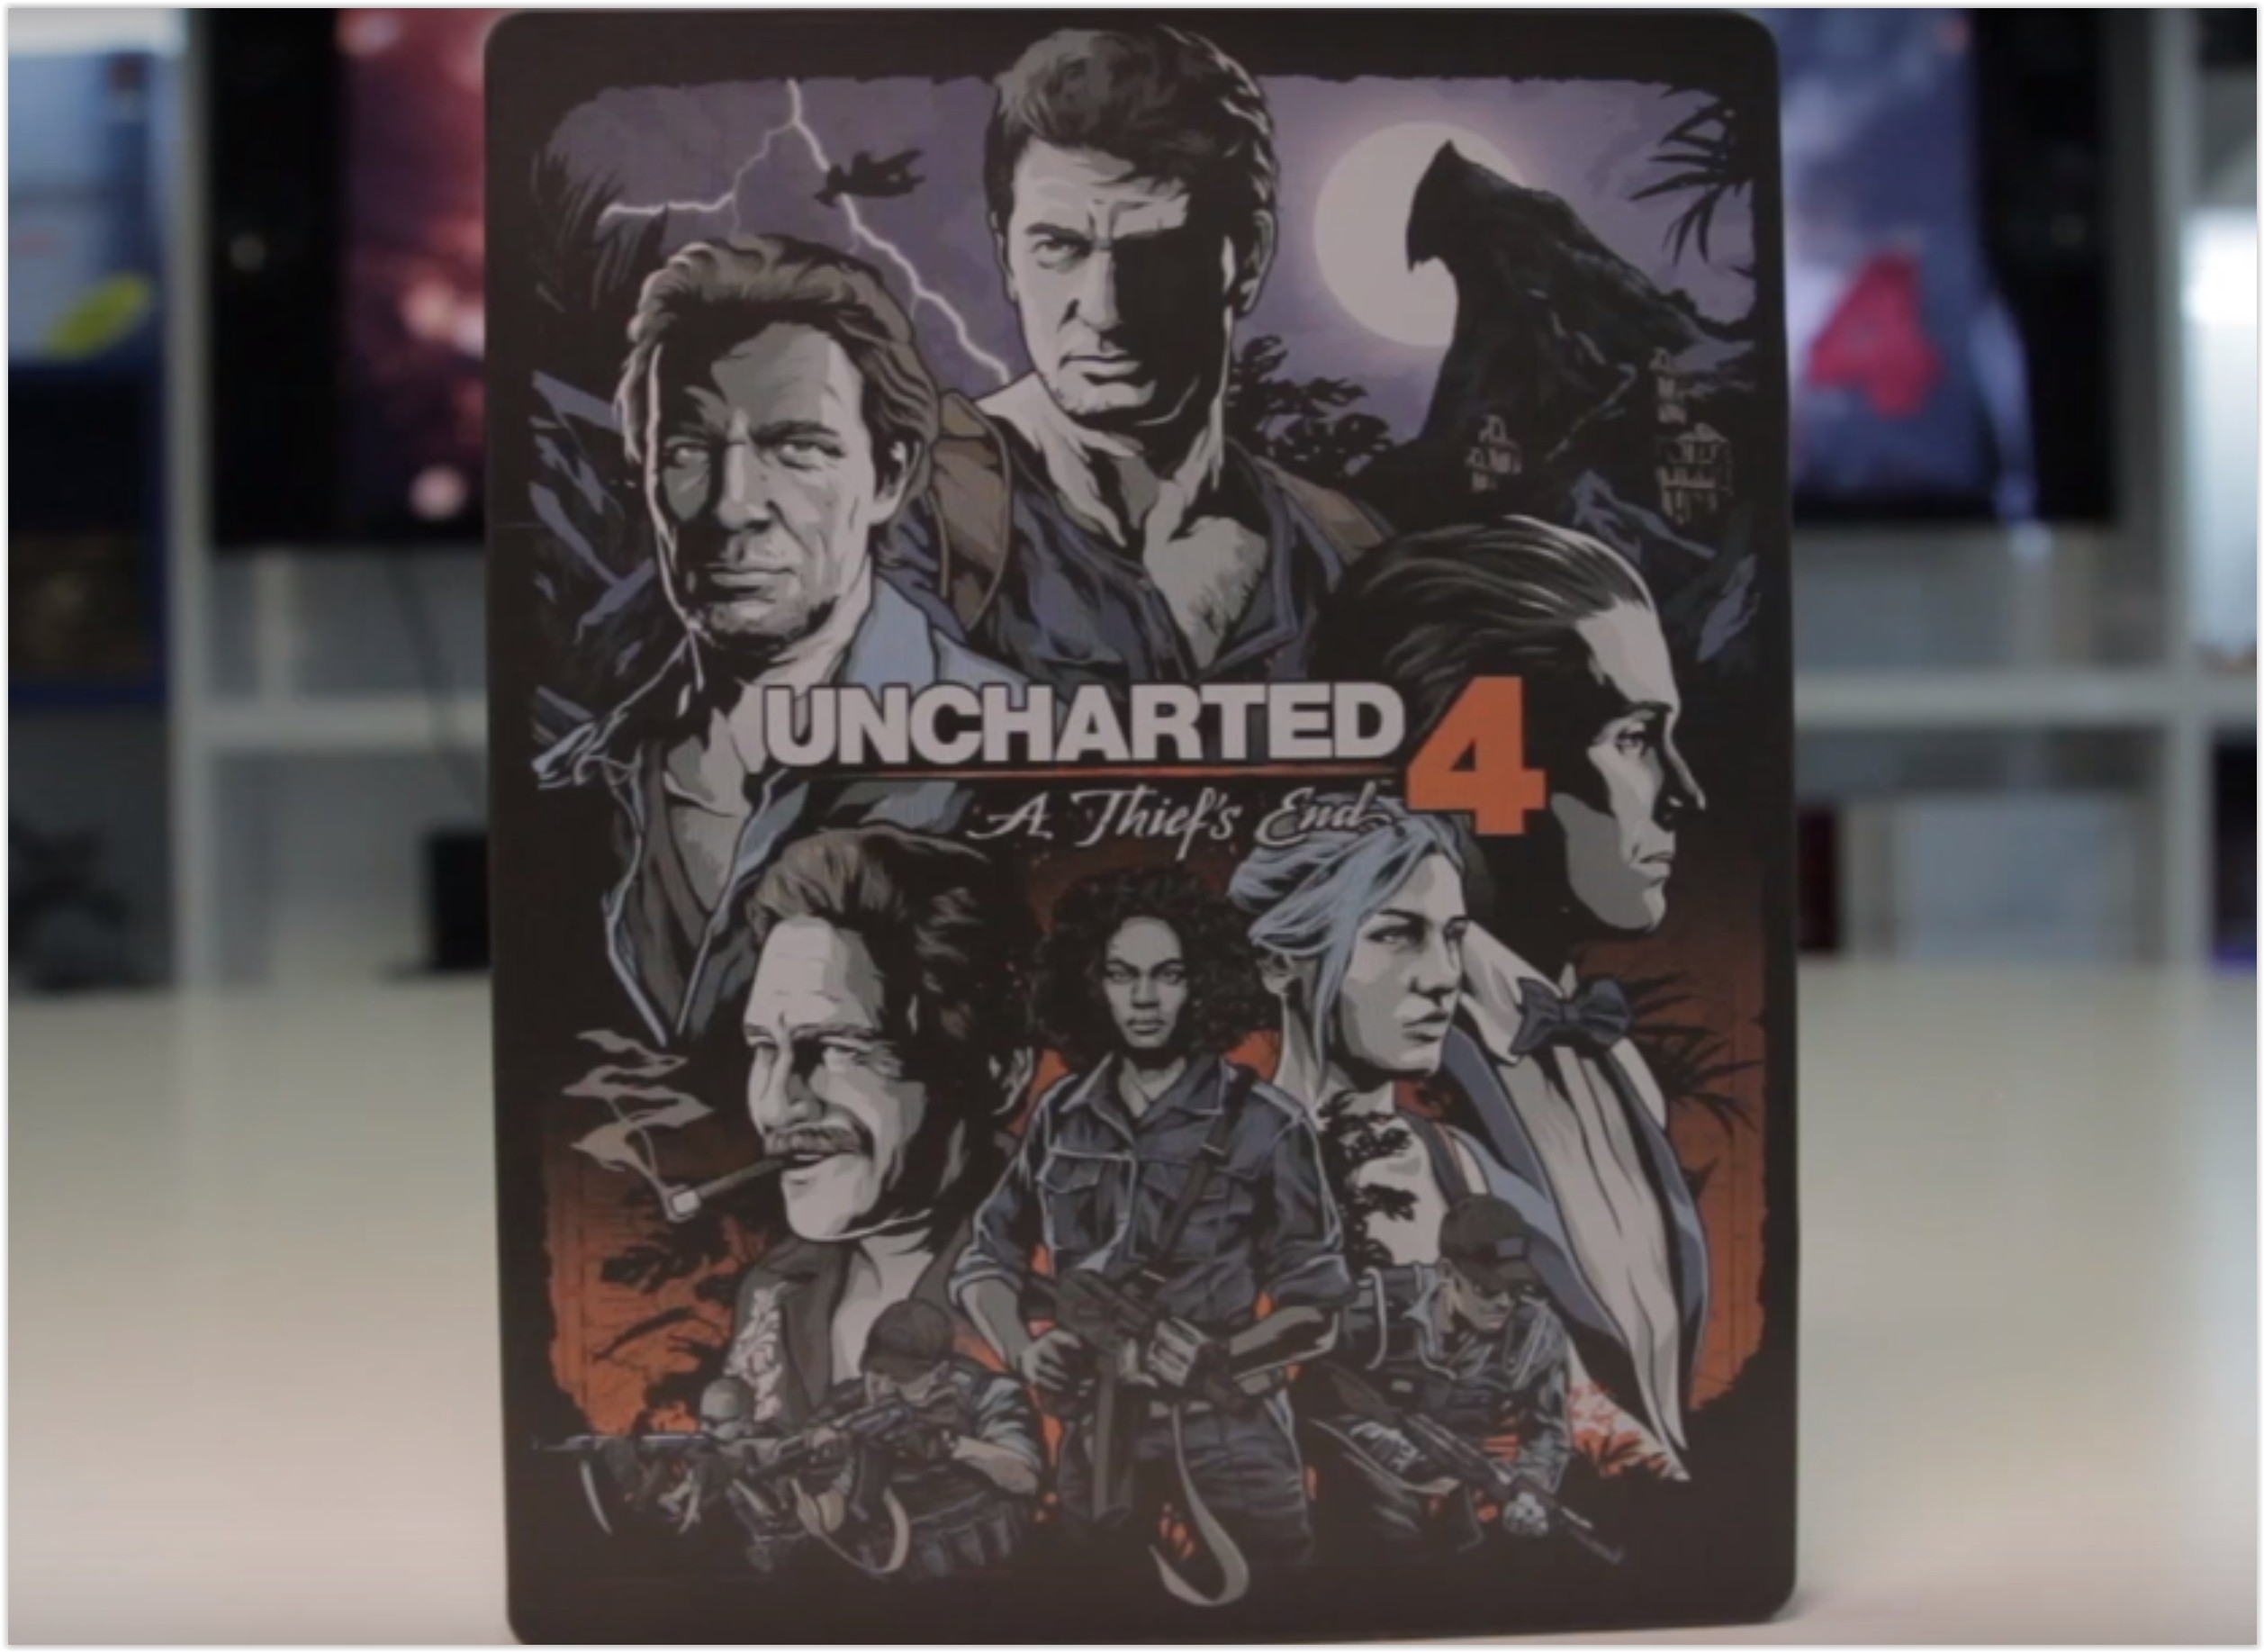 Uncharted 4 Libertalia Collector's Edition disc